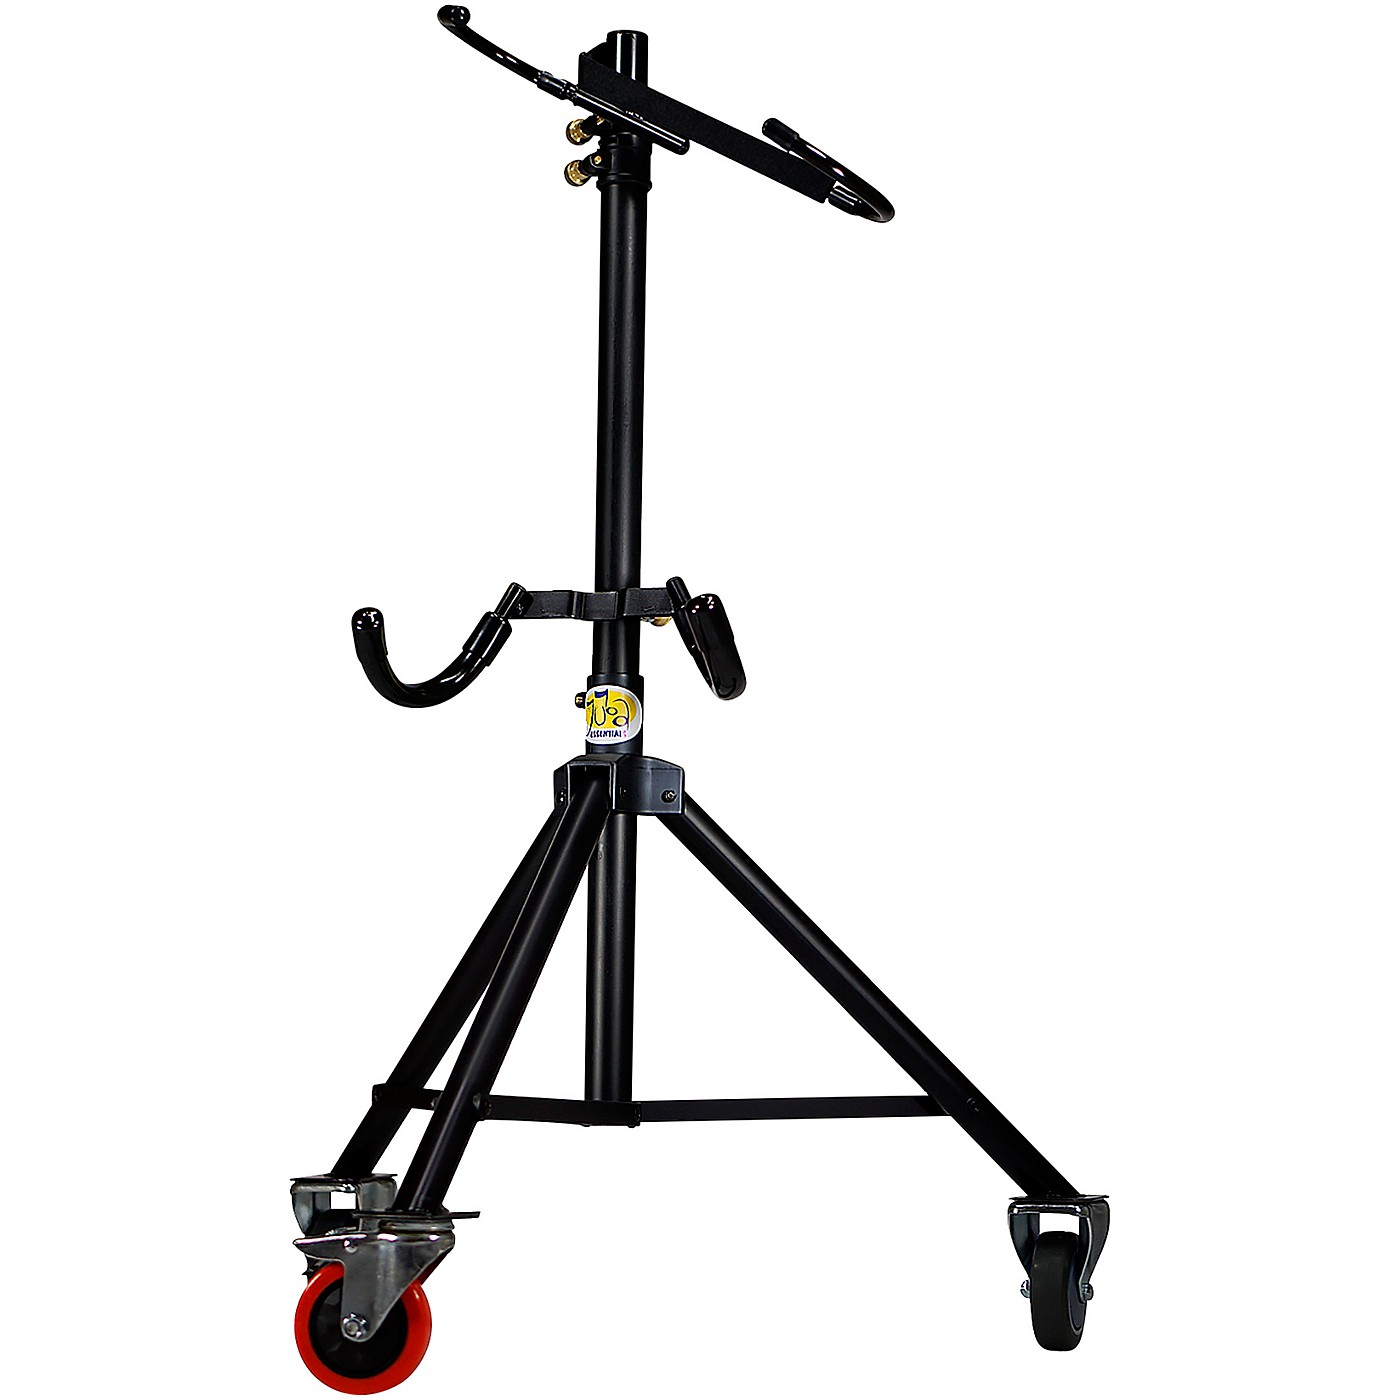 Tuba Essentials The Hug Adjustable Euphonium Stand for Right Side Mouthpiece Instruments thumbnail